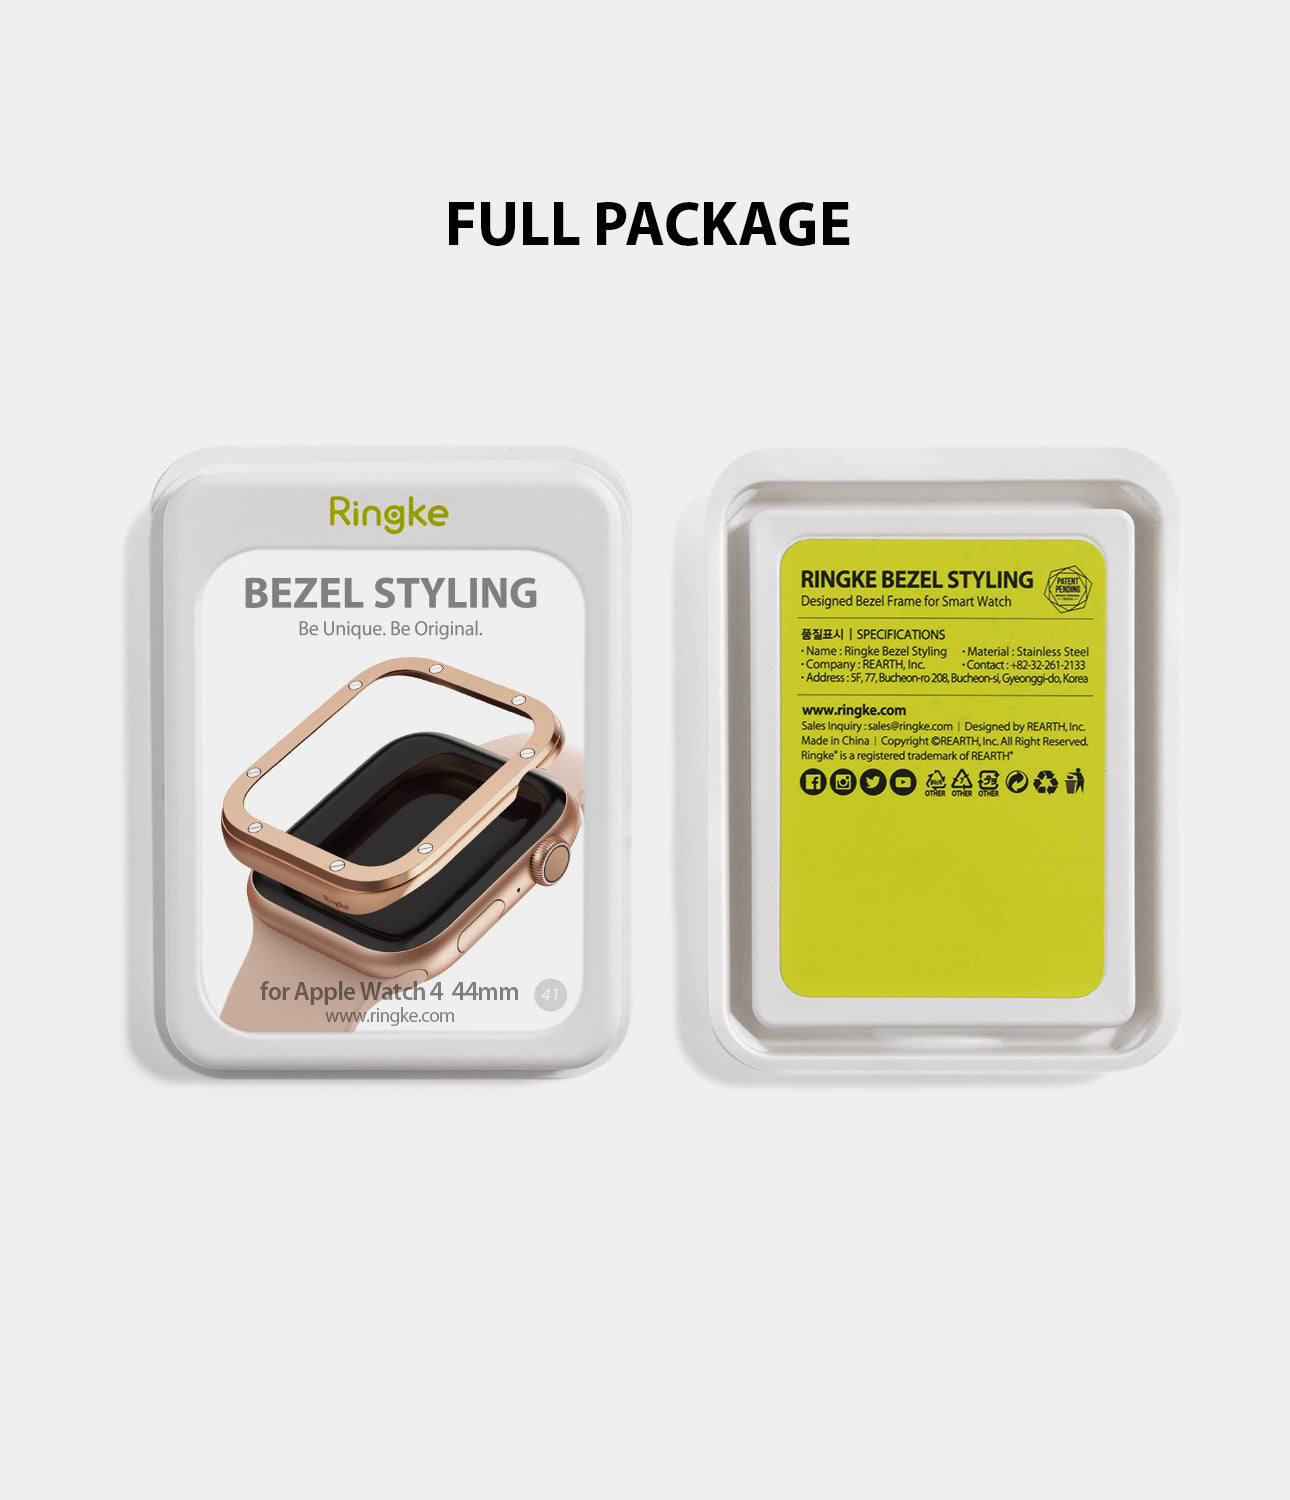 apple watch 4 44mm case ringke bezel styling stainless steel frame cover 44-41 full package